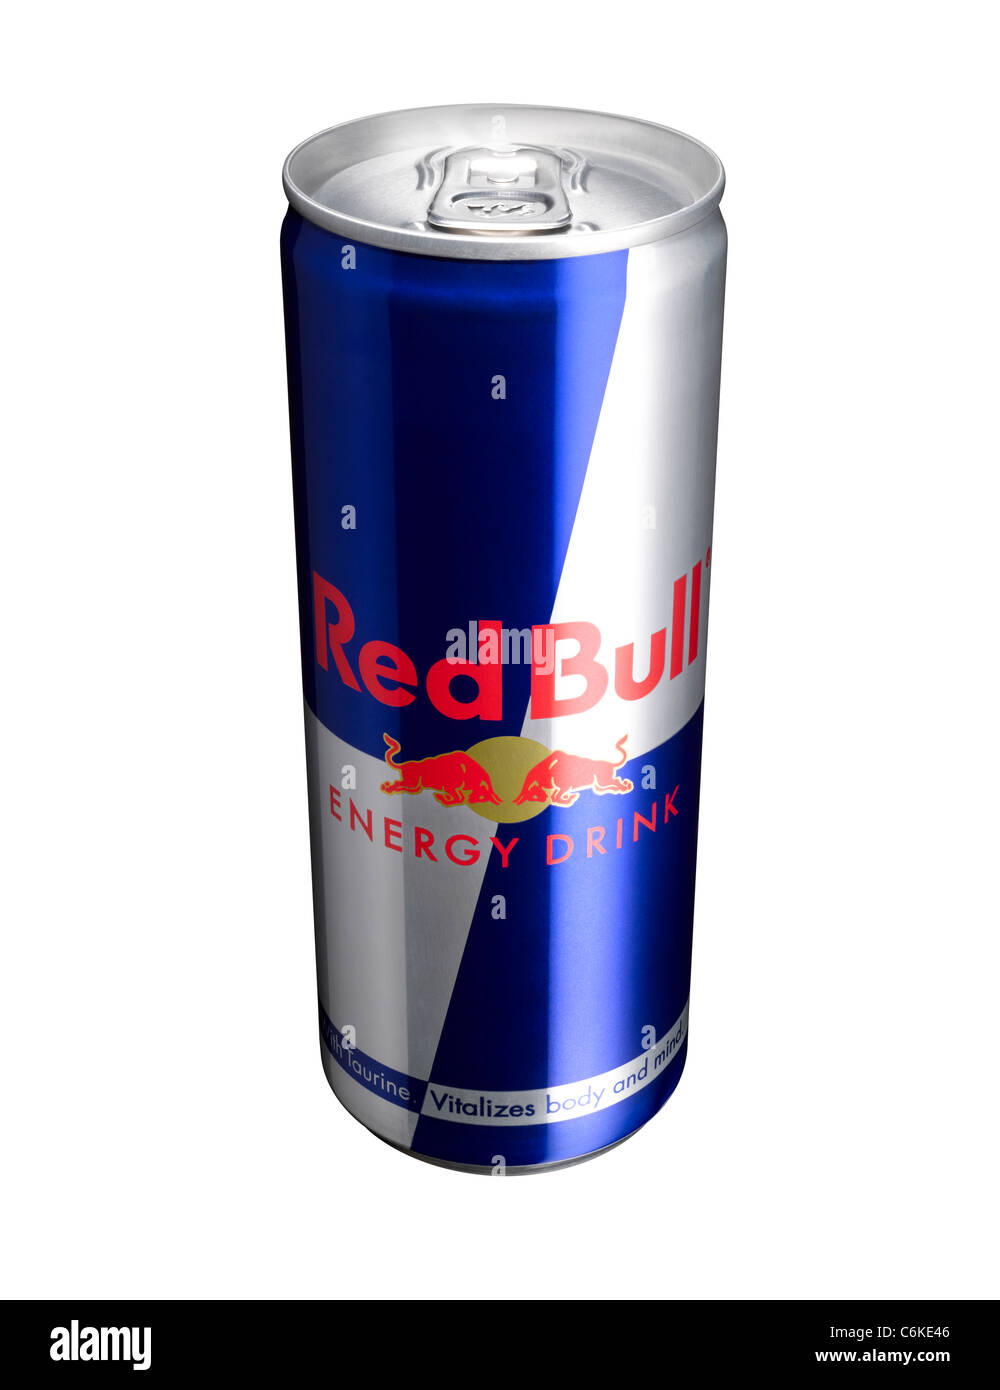 a cut out of a can of red bull energy drink stock photo